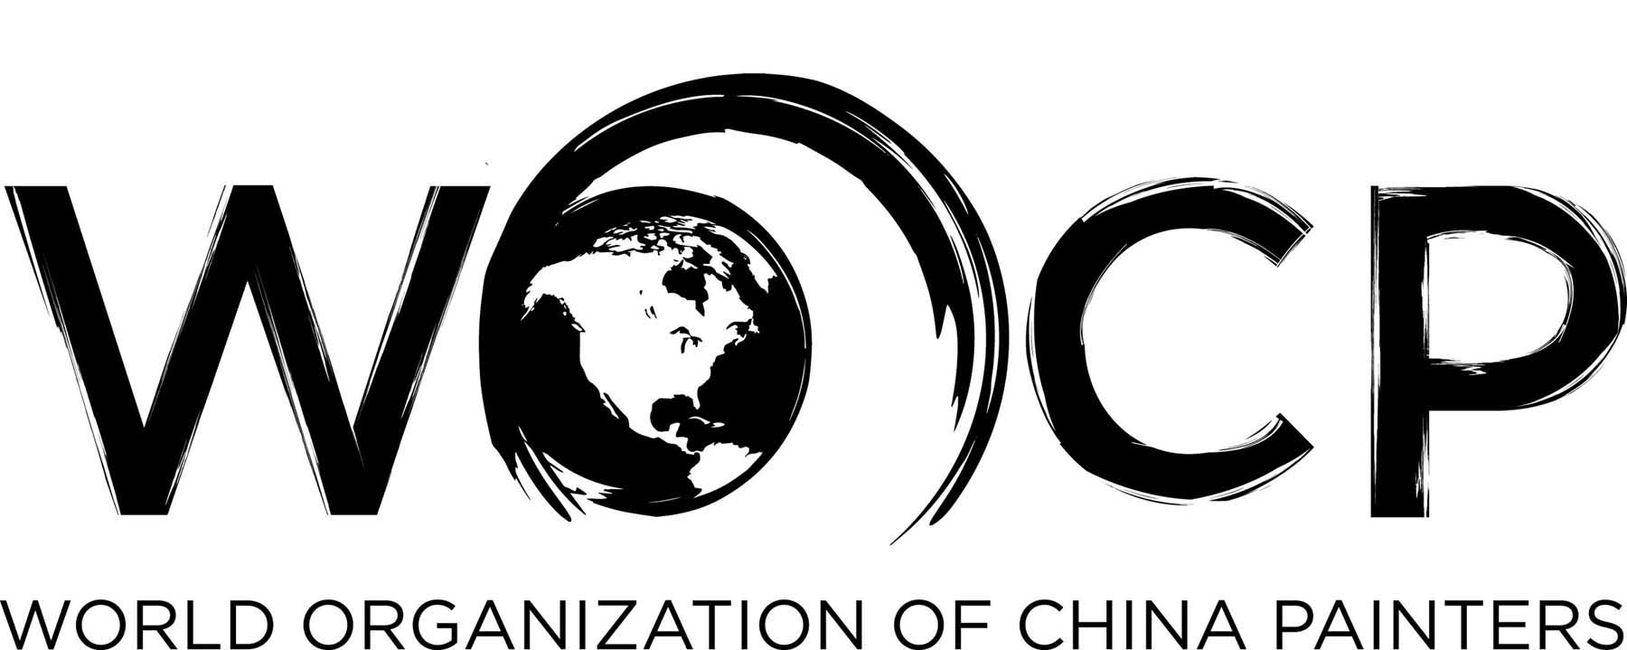 New 2020 logo for the World Organization of China Painters